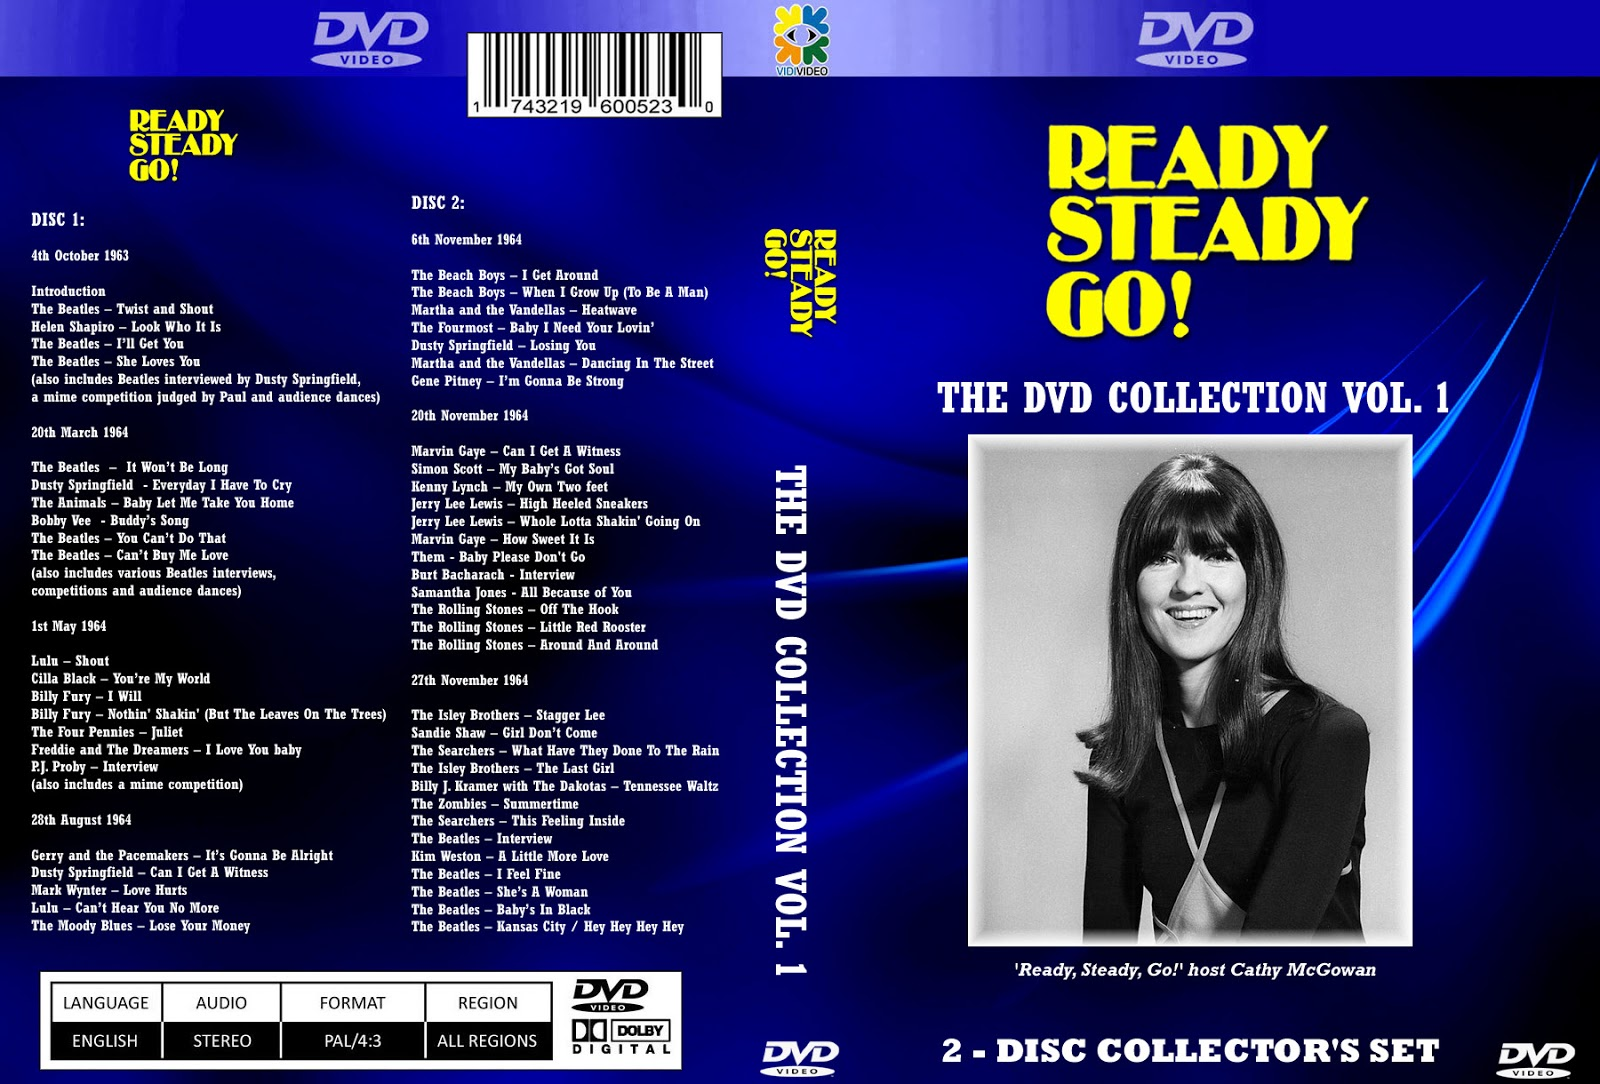 Music TV and Video Archives: VARIOUS TV SHOWS on DVD